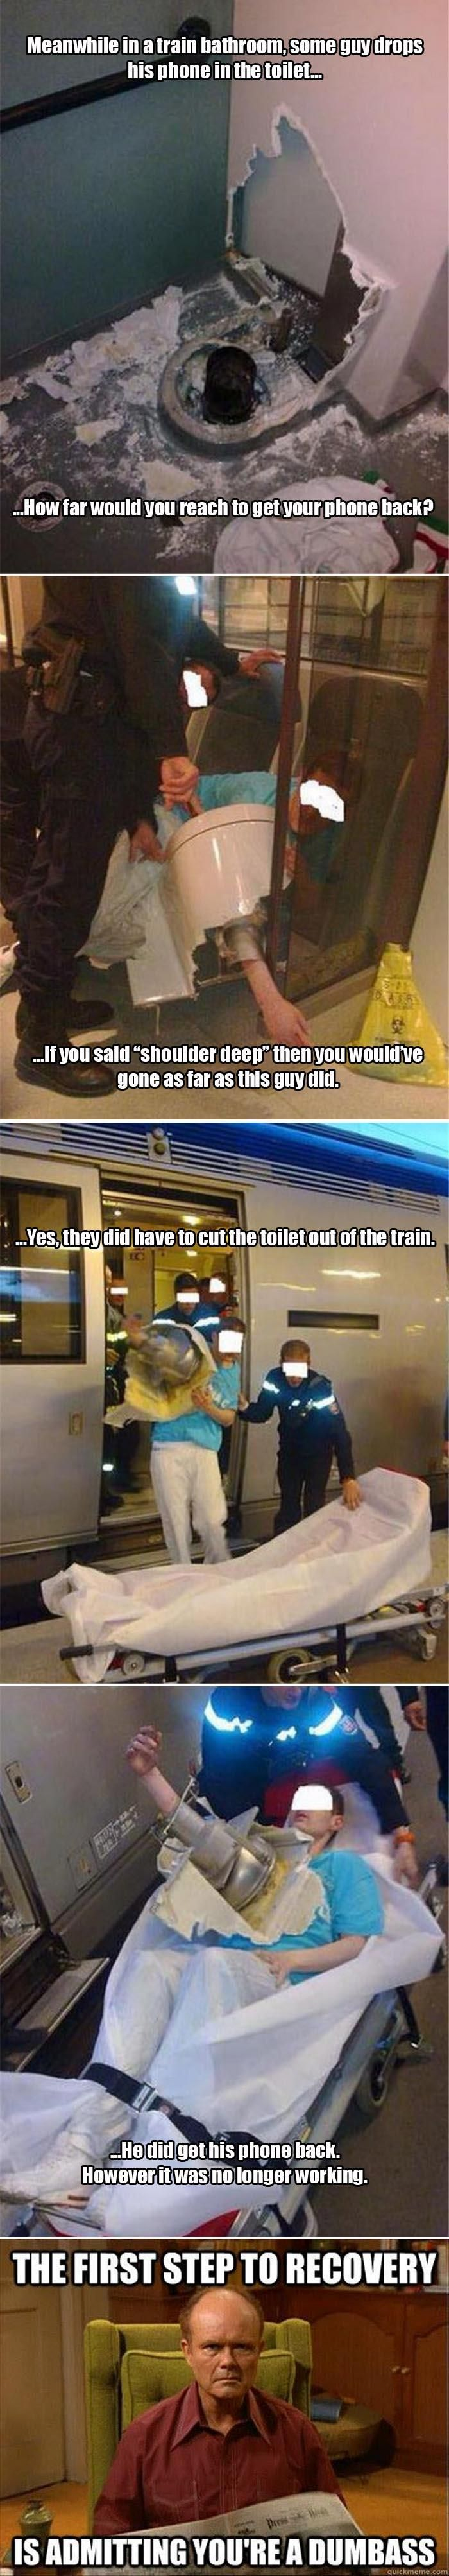 You Wont Believe What This Guy Did After Dropping His Phone In The Toilet  5 Pics